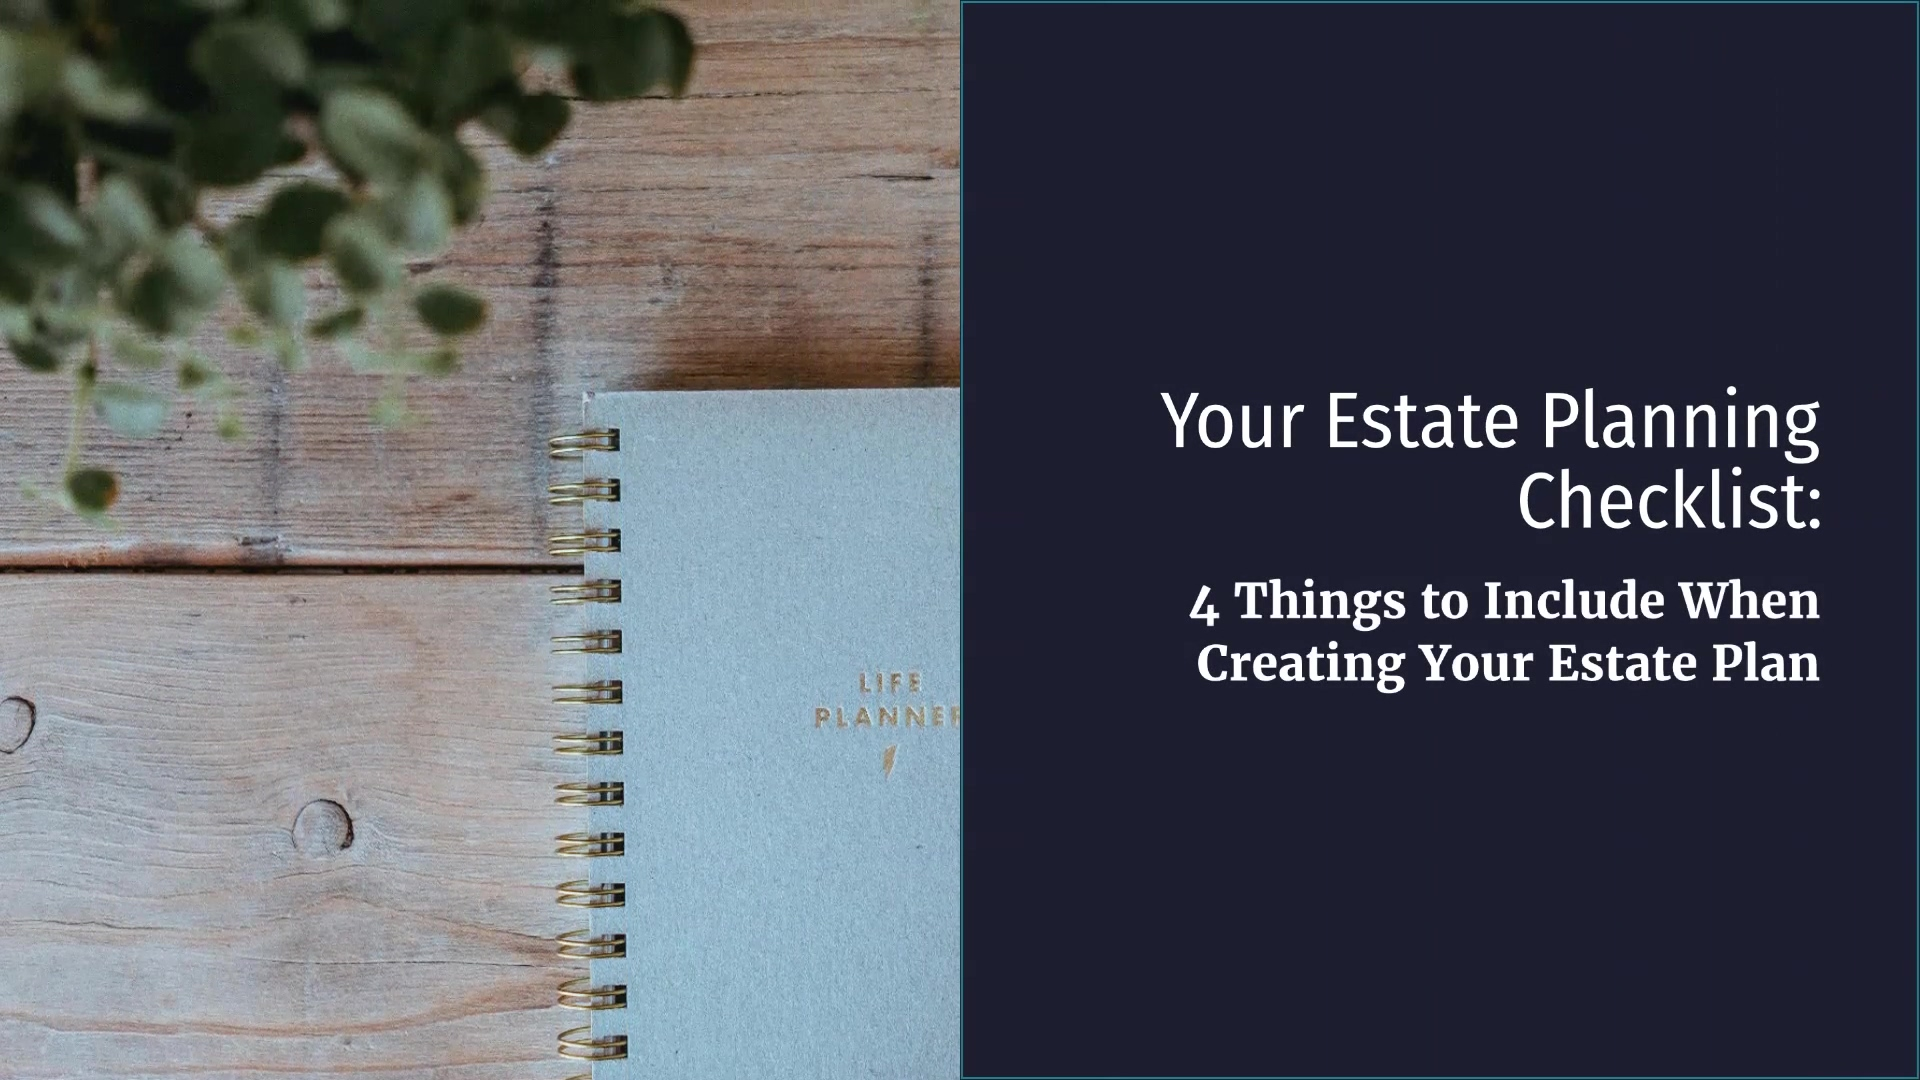 Your_Estate_Planning_Checklist